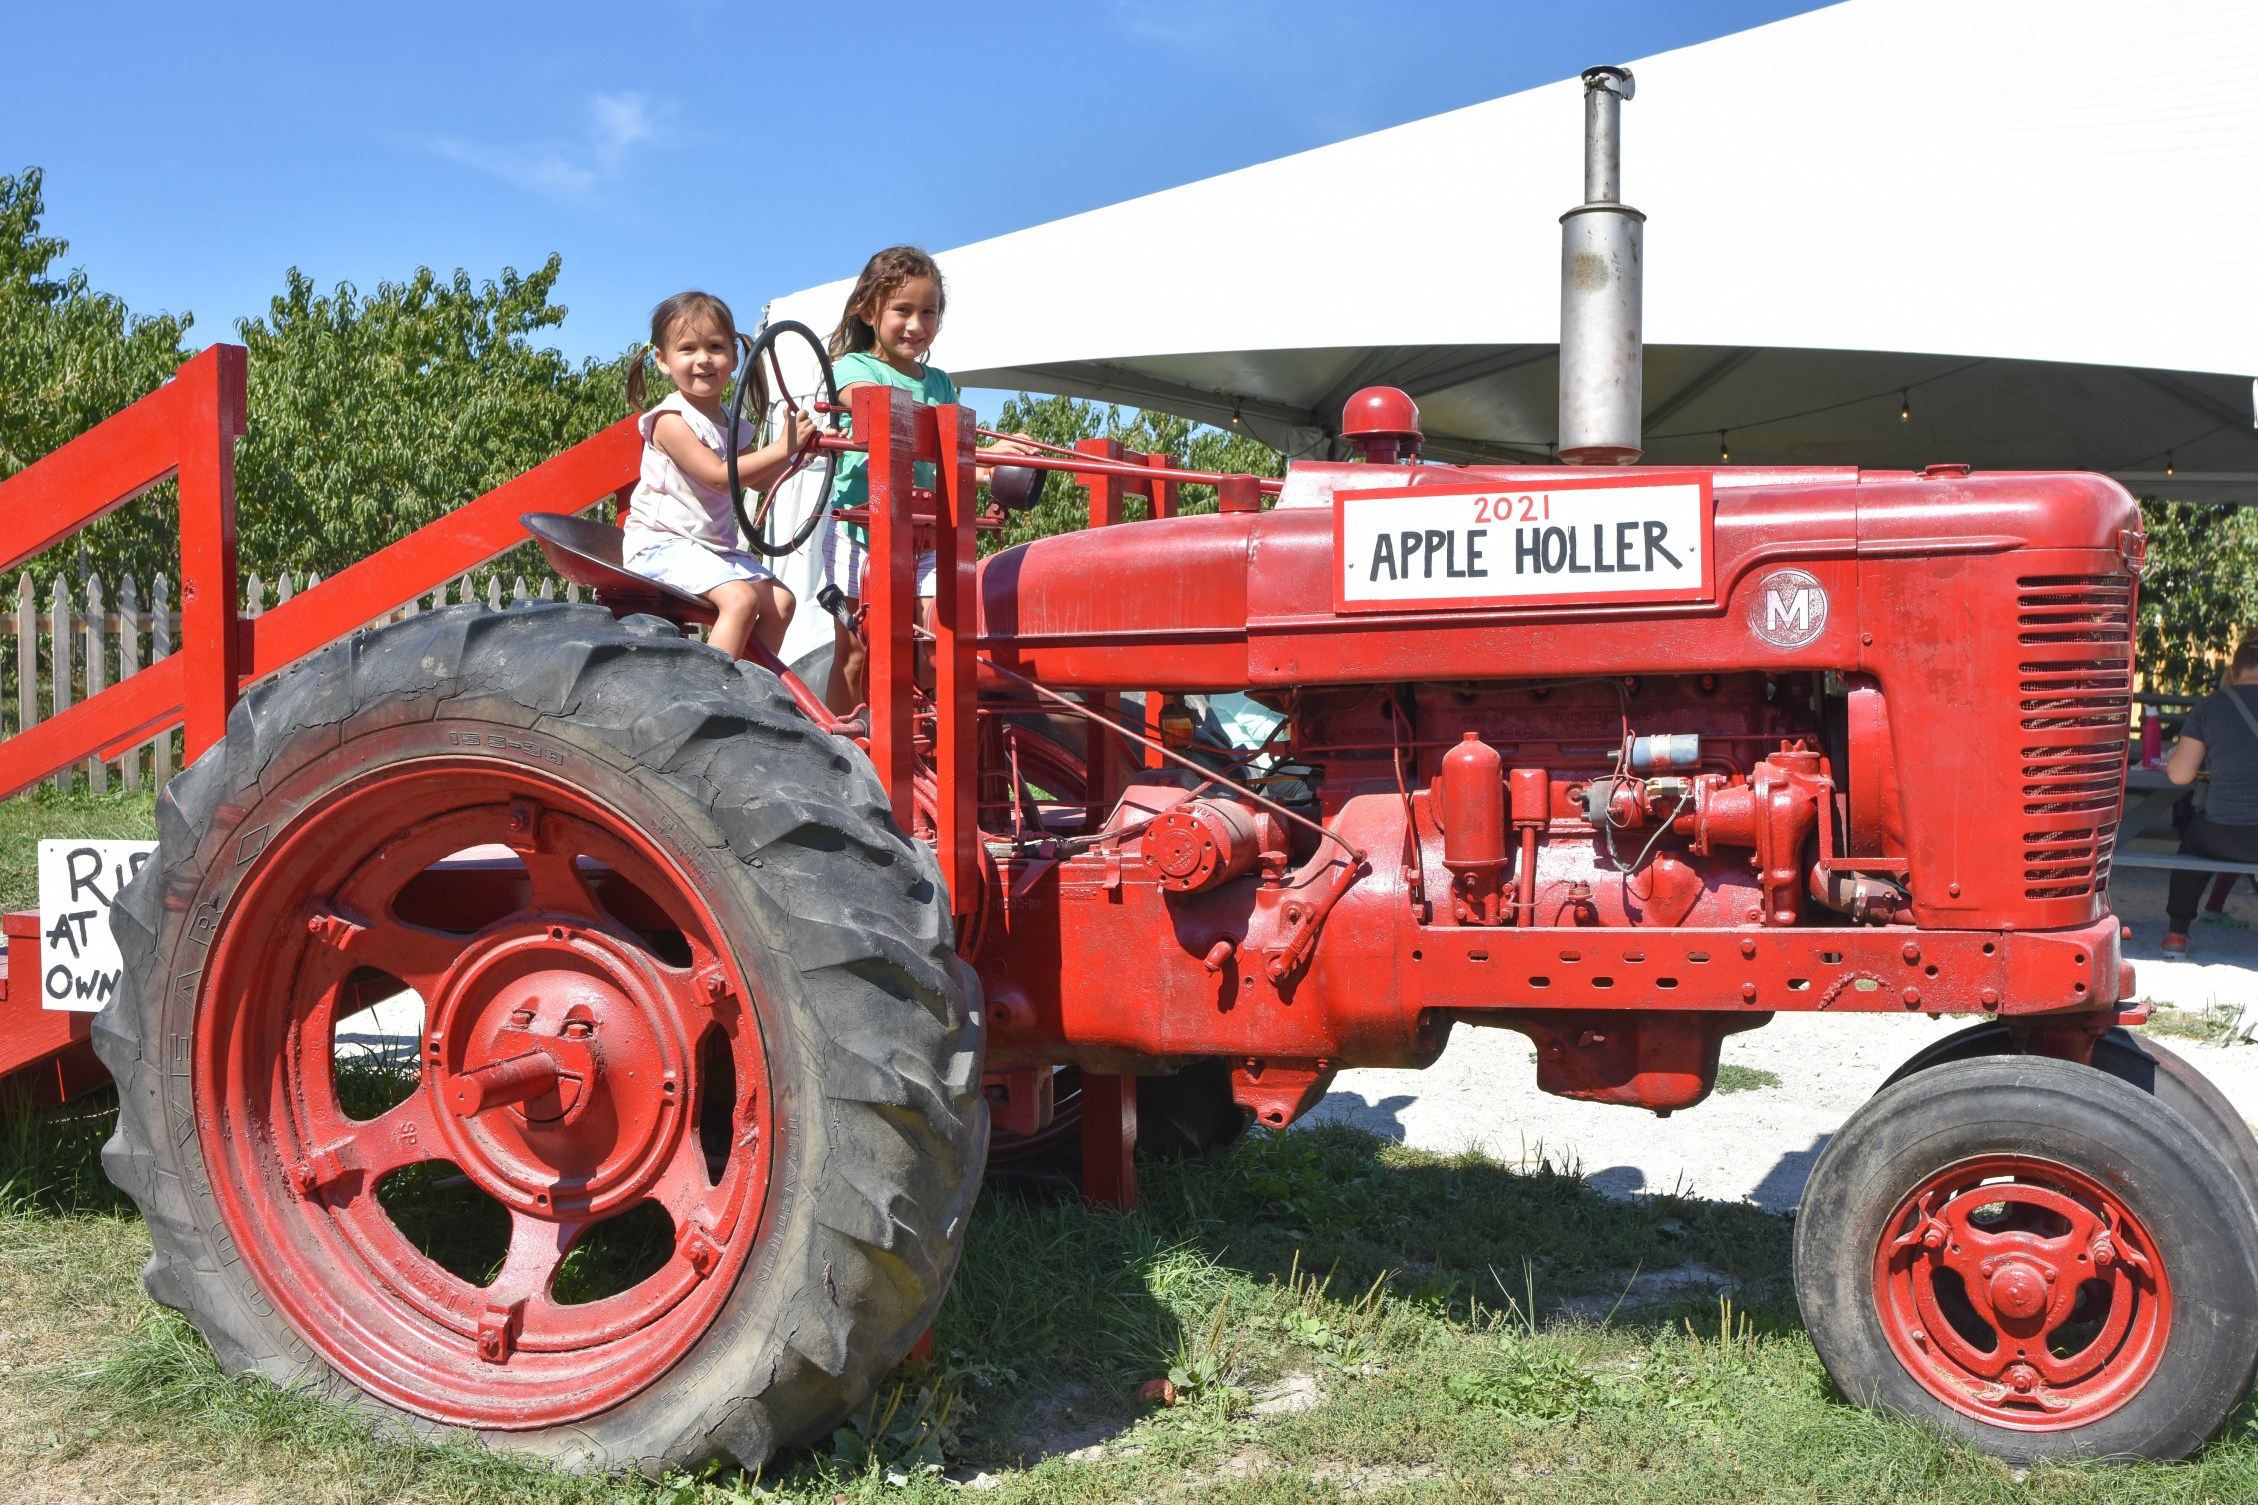 Red tractor photo opp at Apple Holler farm and orchard near Chicago